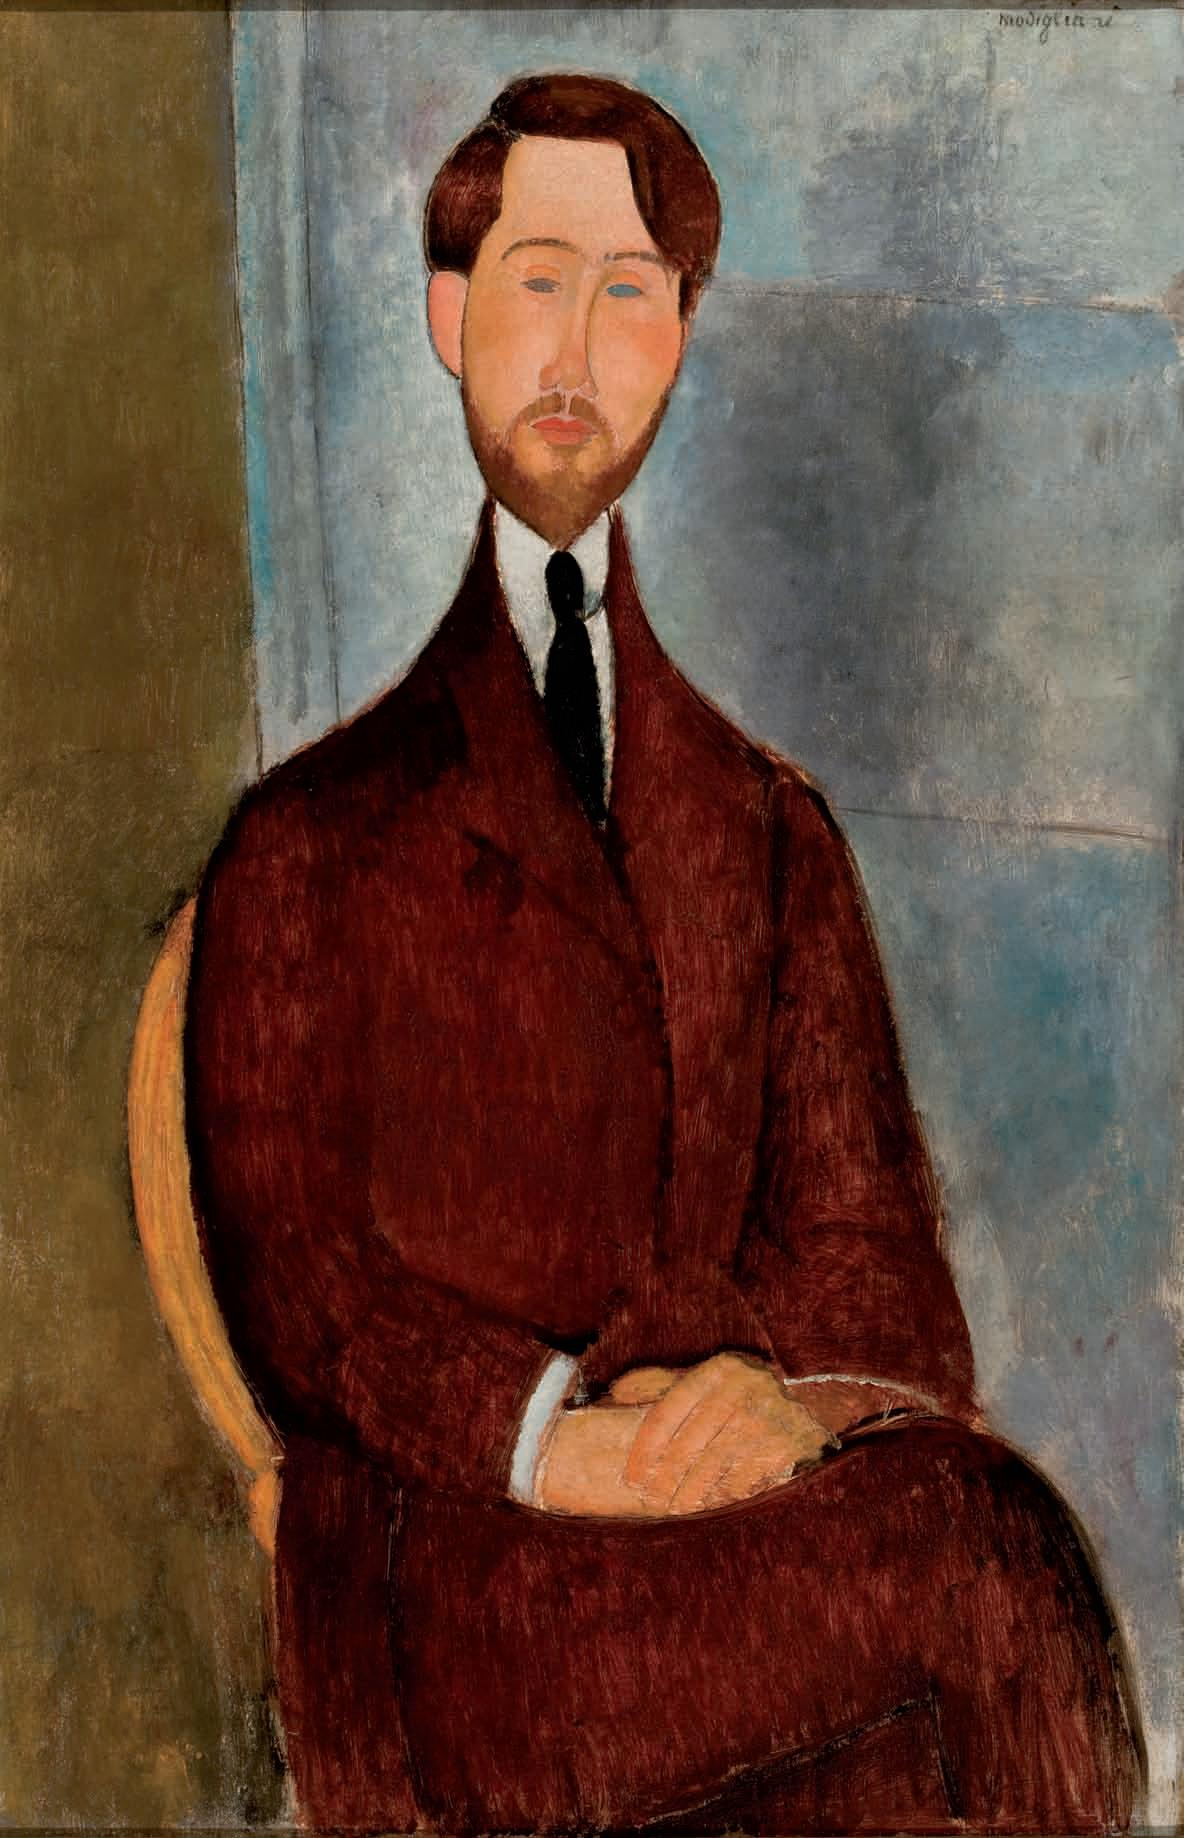 Amedeo Modigliani's Portrait of Leopold Zborowski.